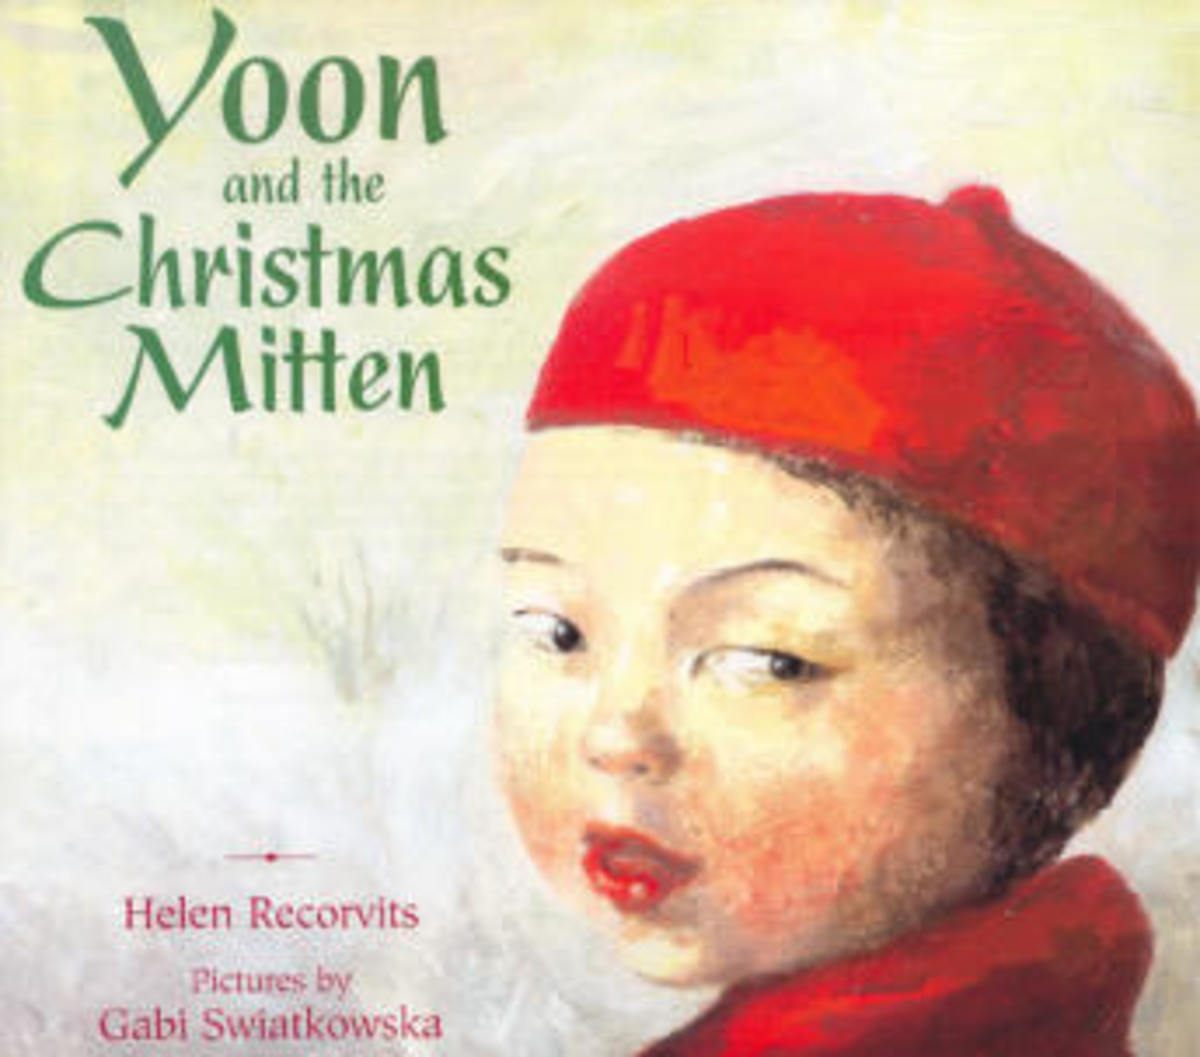 Yoon and the Christmas Mitten by Helen Recorvits is a sequal to My Name is Yoon. Another book in the Yoon series is Yoon and the Jade Bracelet.